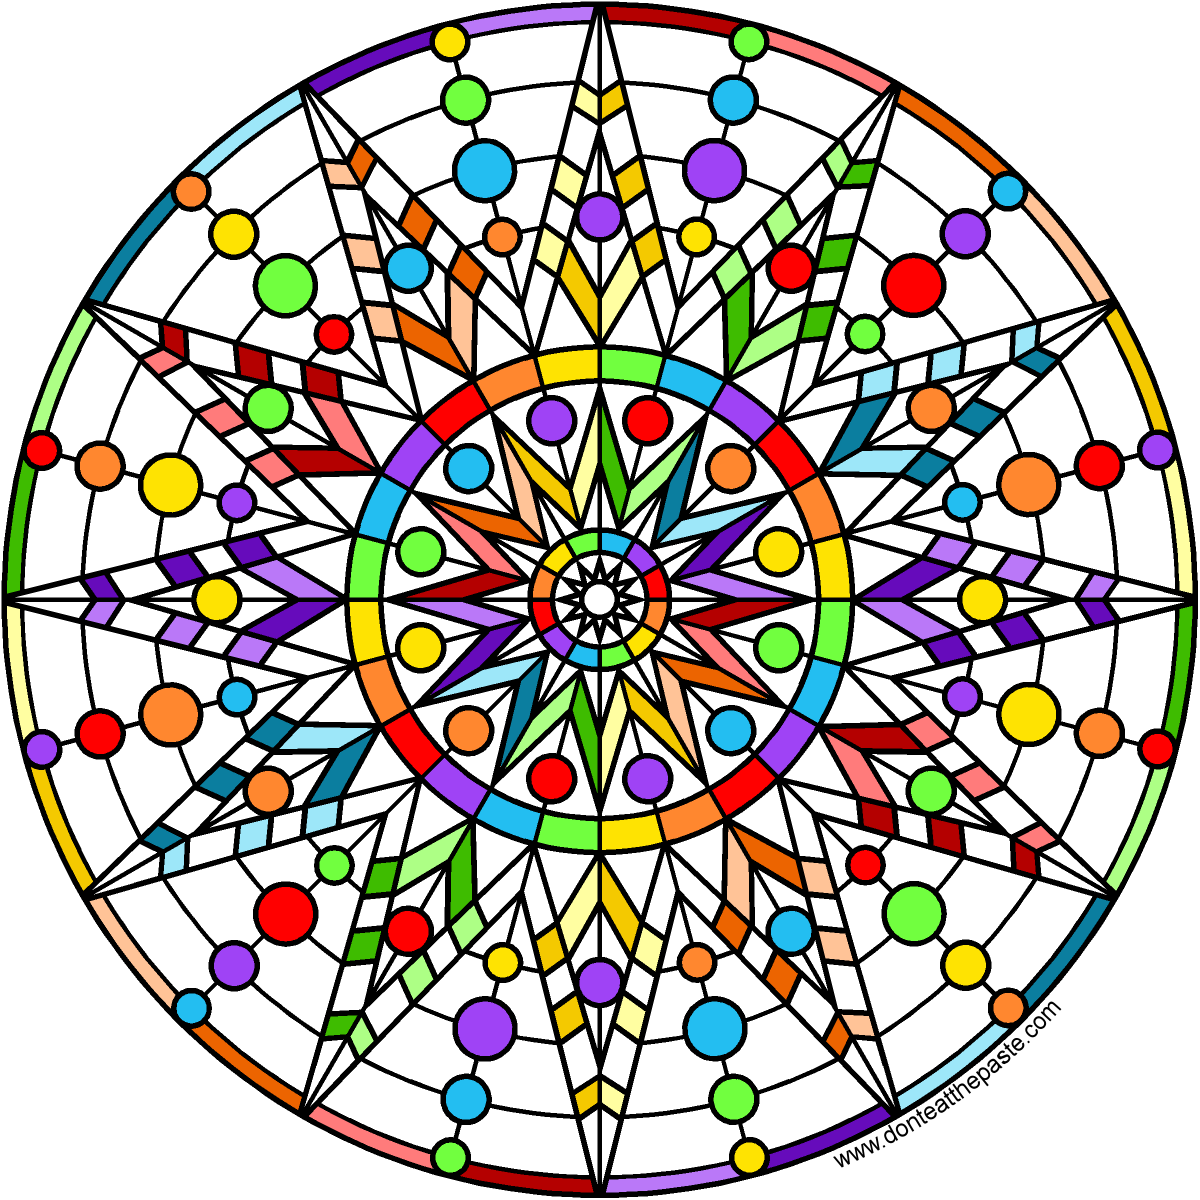 variety of free mandala printable coloring pages rainbow star mandala blank version available to - Blank Rainbow To Color